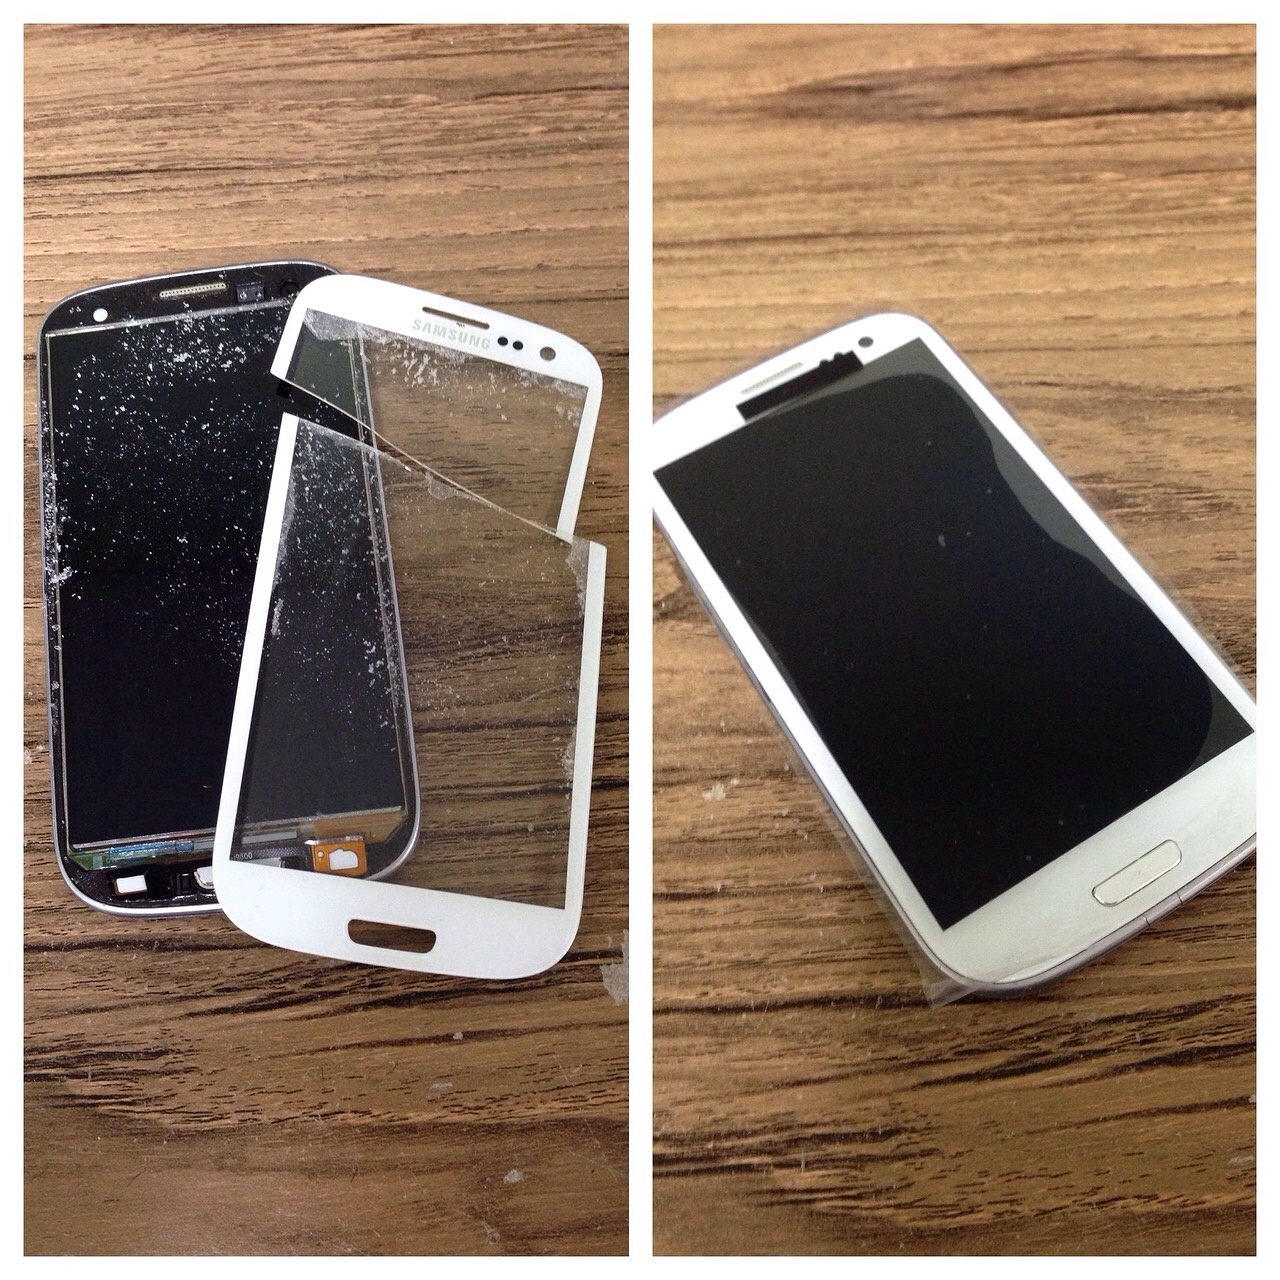 Samsung S3 Glass Repair